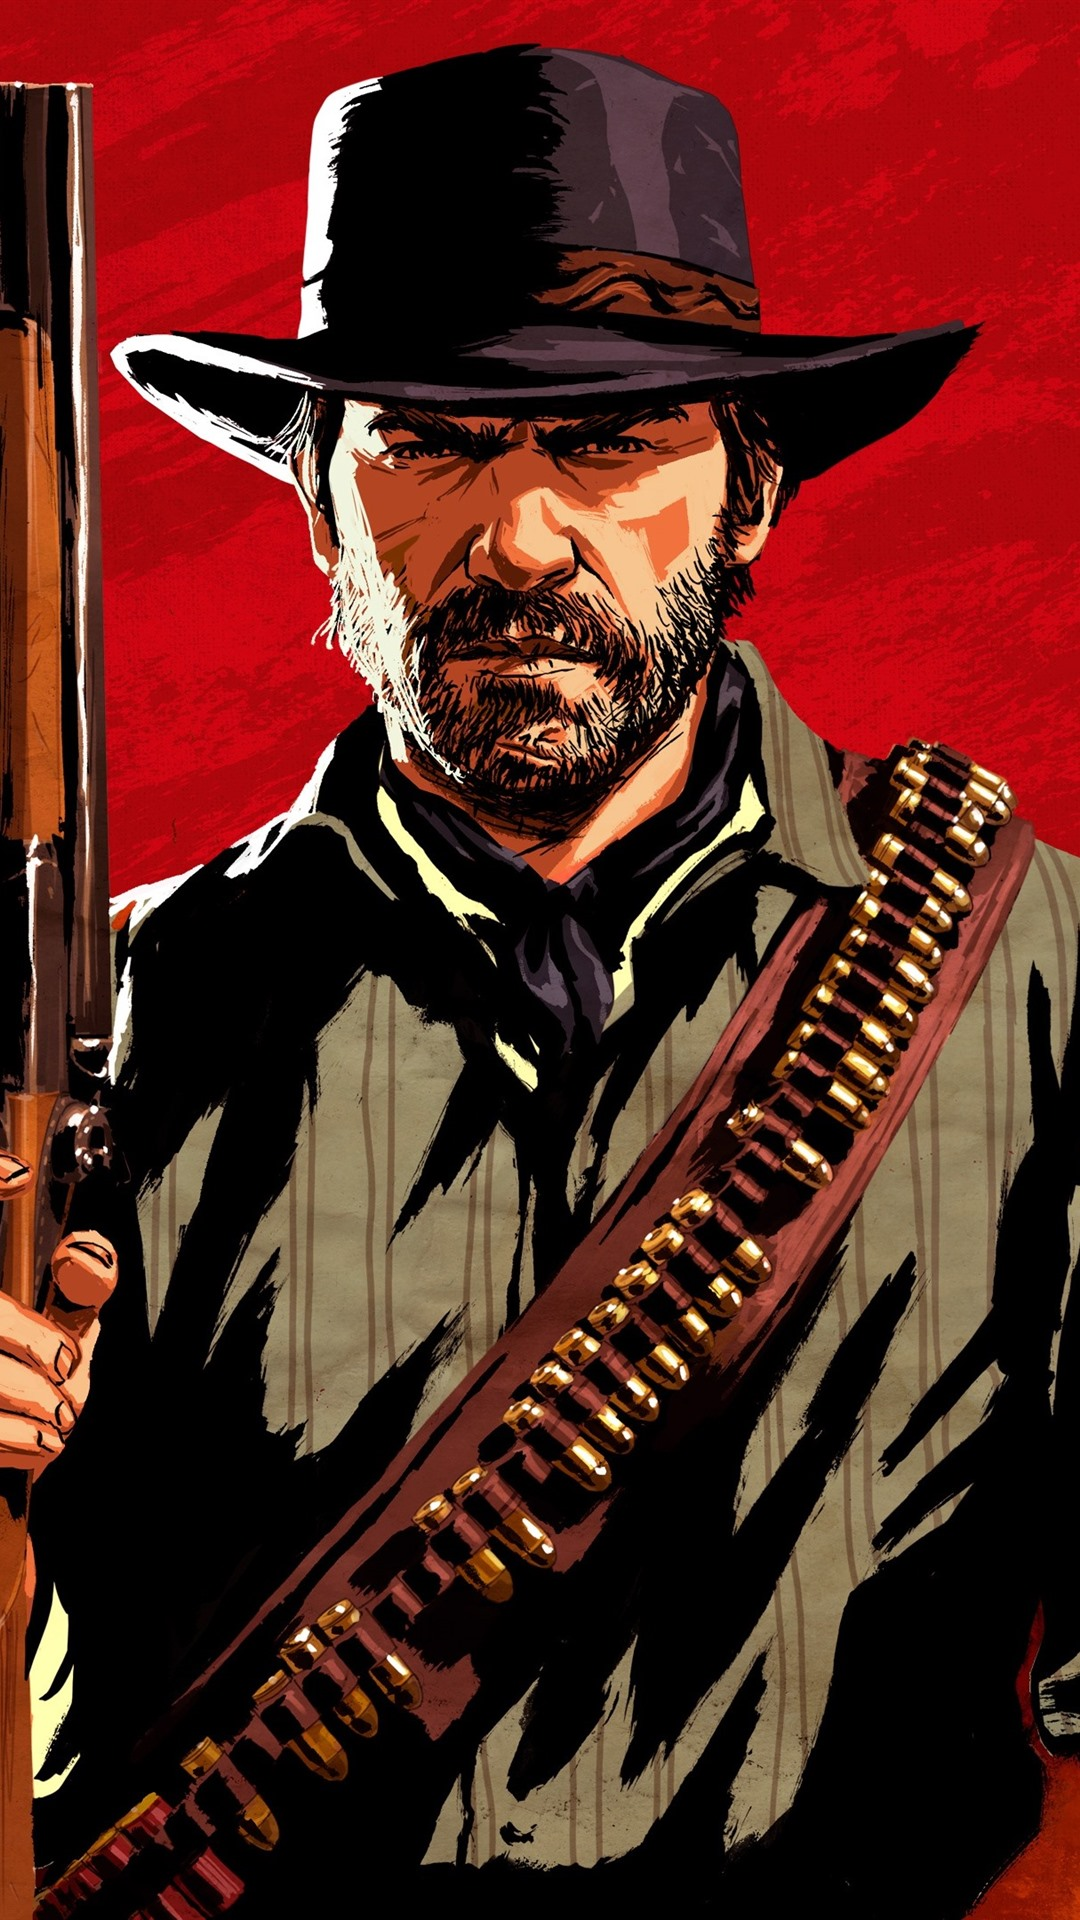 Red Dead Redemption 2 Ps4 Game 1080x1920 Iphone 8 7 6 6s Plus